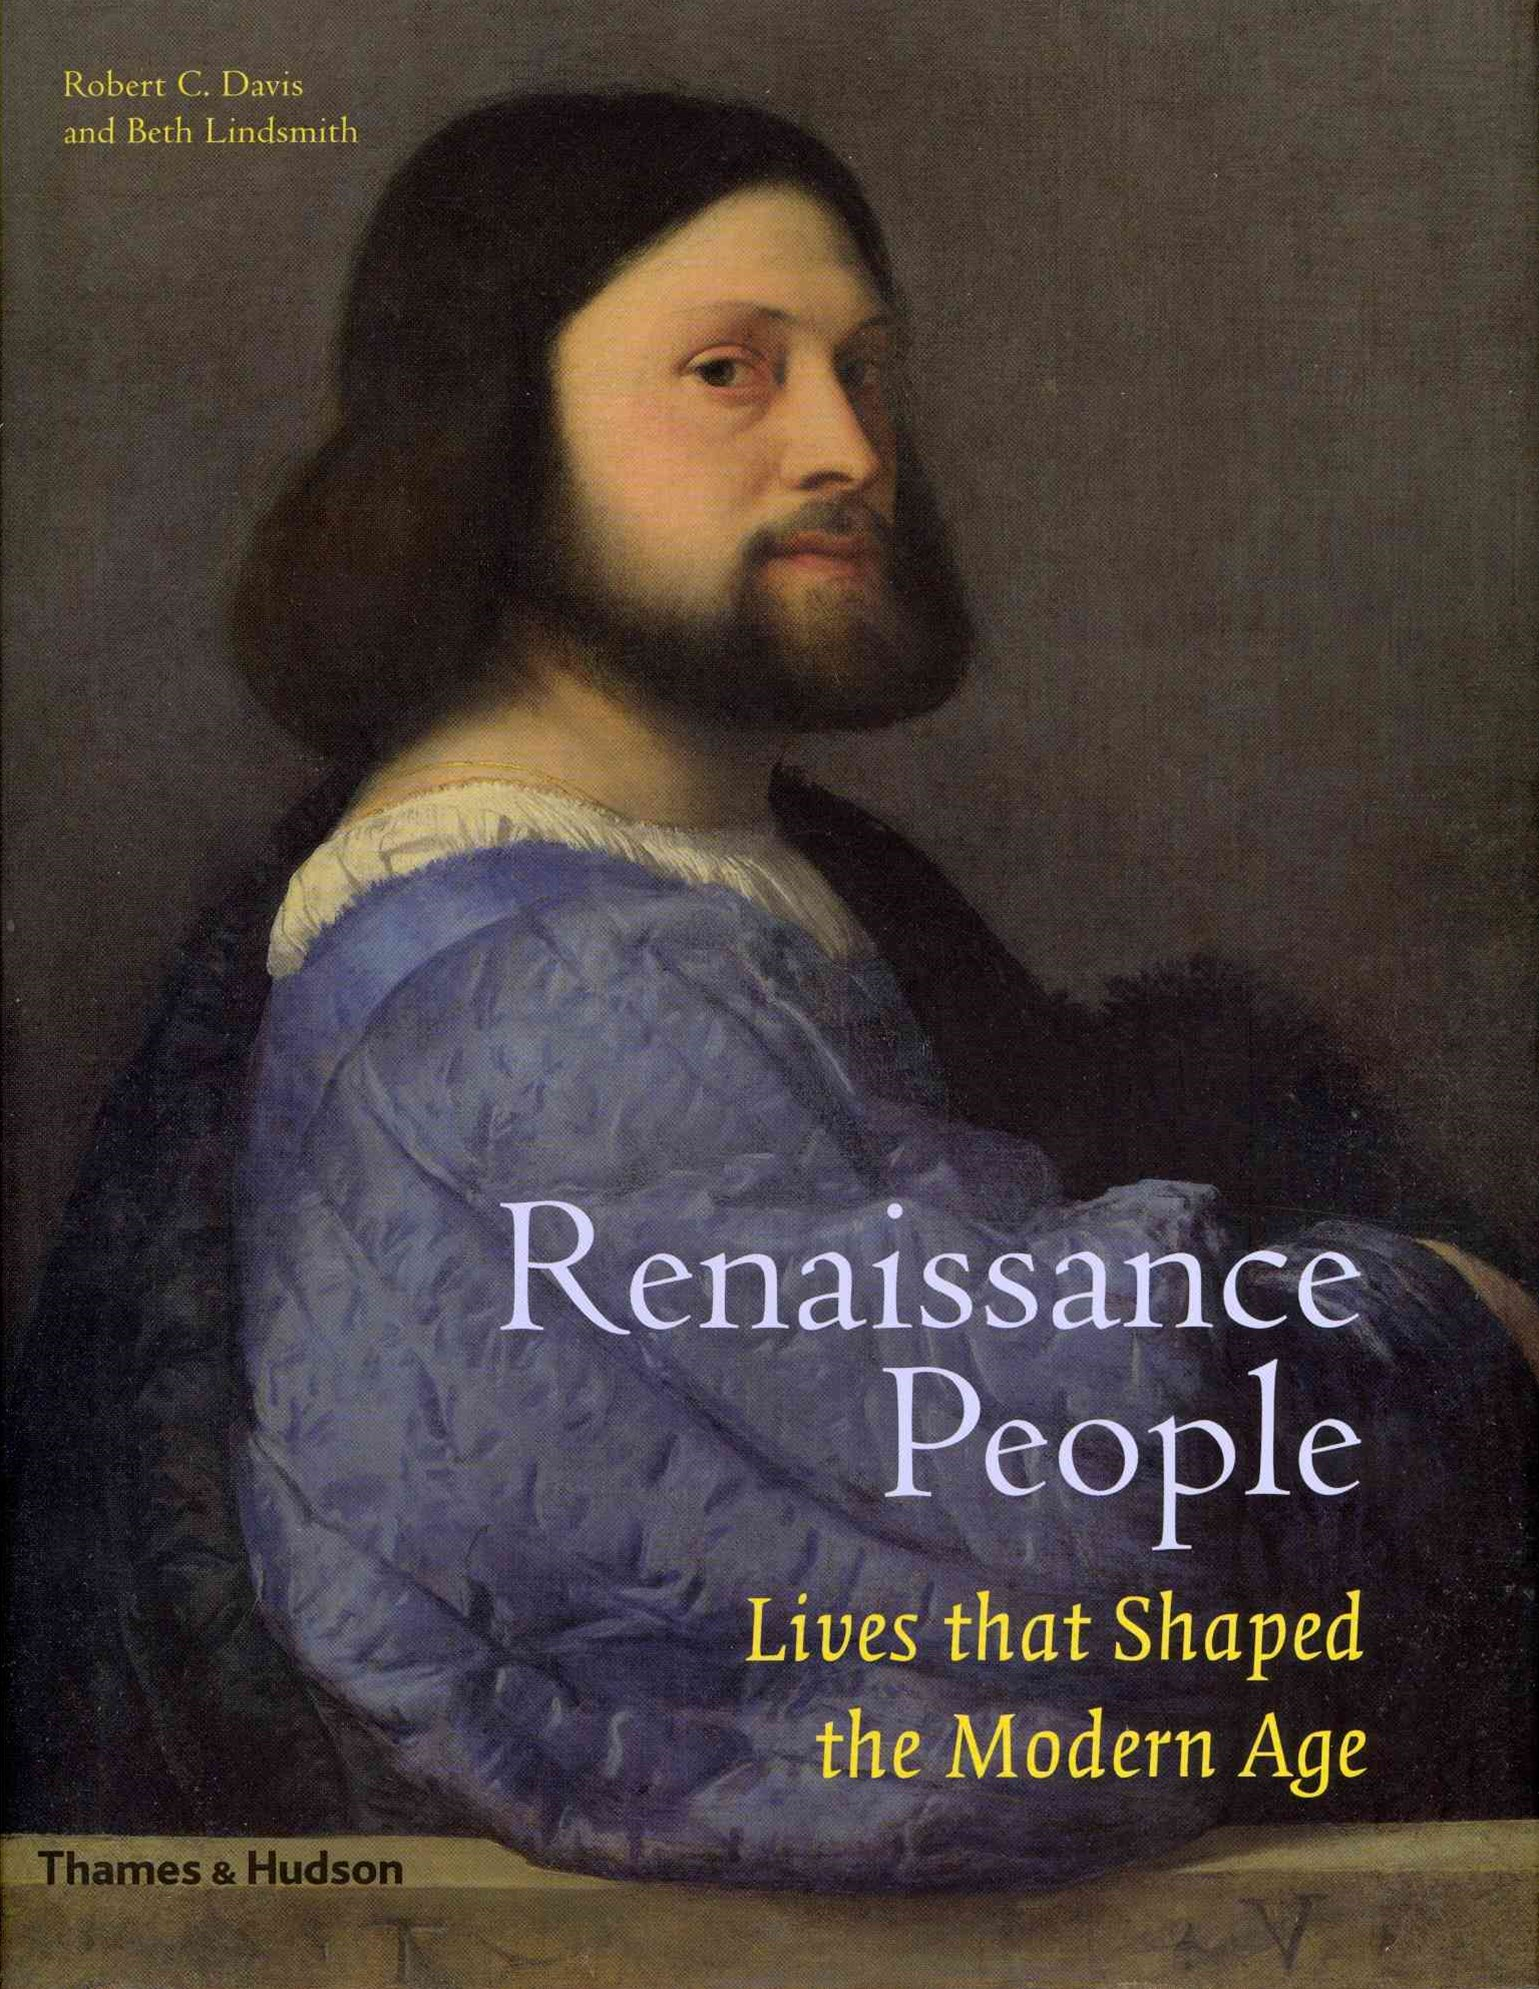 Renaissance People: Lives that Shaped the Modern Age